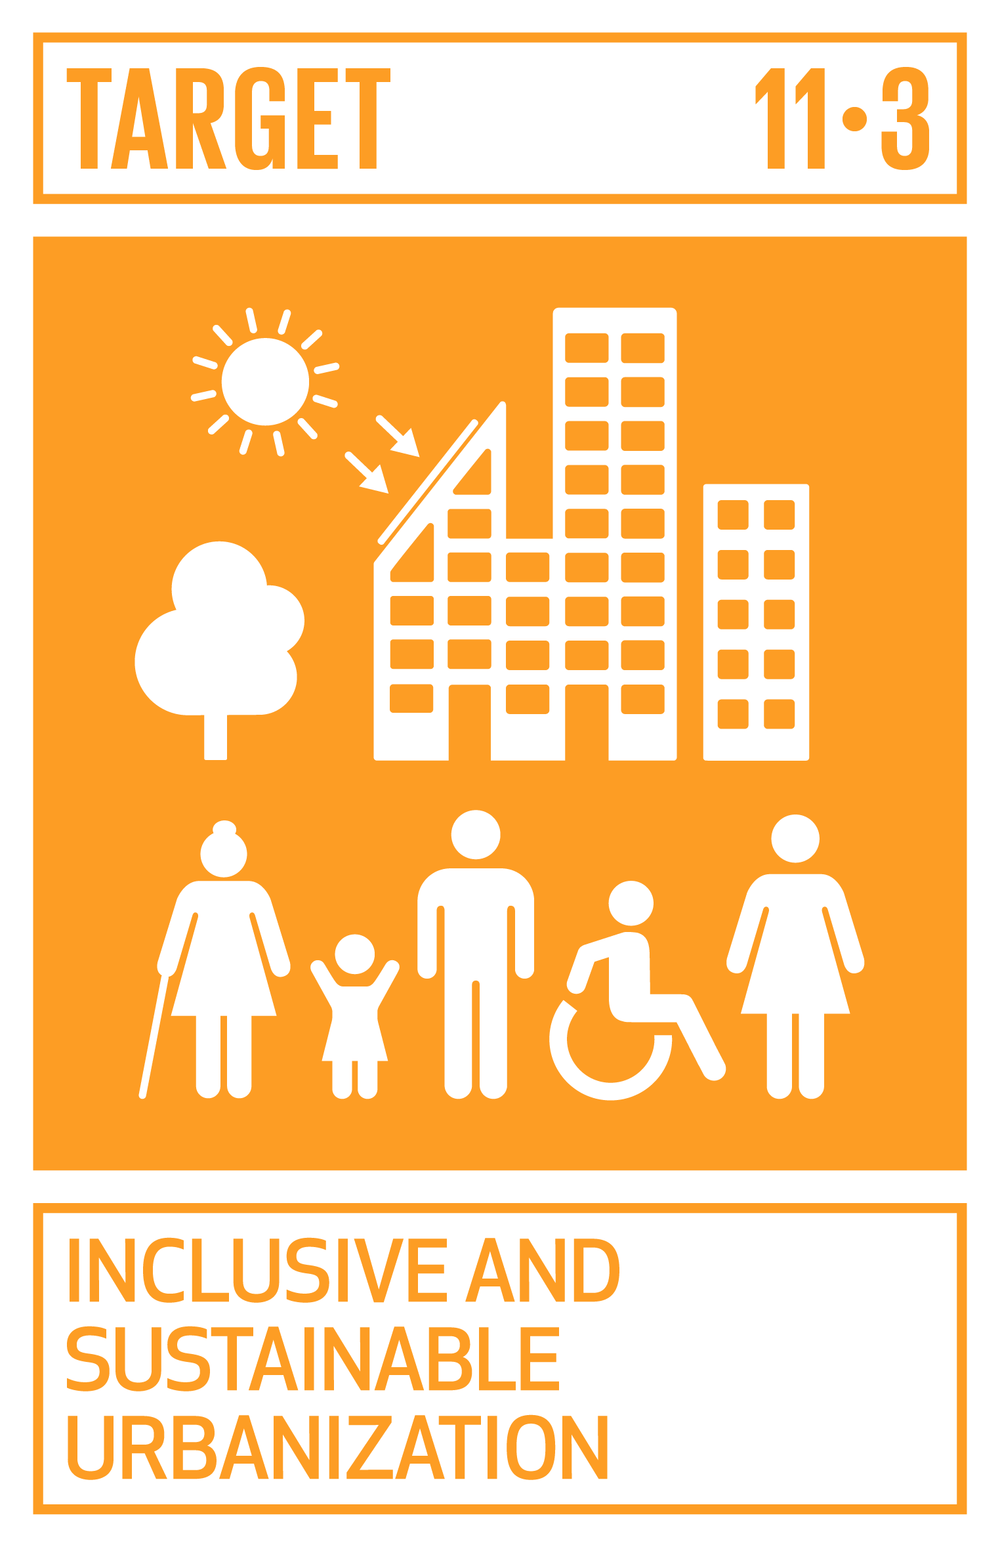 By 2030, provide access to safe, affordable, accessible and sustainable transport systems for all, improving road safety, notably by expanding public transport, with special attention to the needs of those in vulnerable situations, women, children, persons with disabilities and older persons.   INDICATORS    11.3.1  Ratio of land consumption rate to population growth rate   11.3.2  Proportion of cities with a direct participation structure of civil society in urban planning and management that operate regularly and democratically